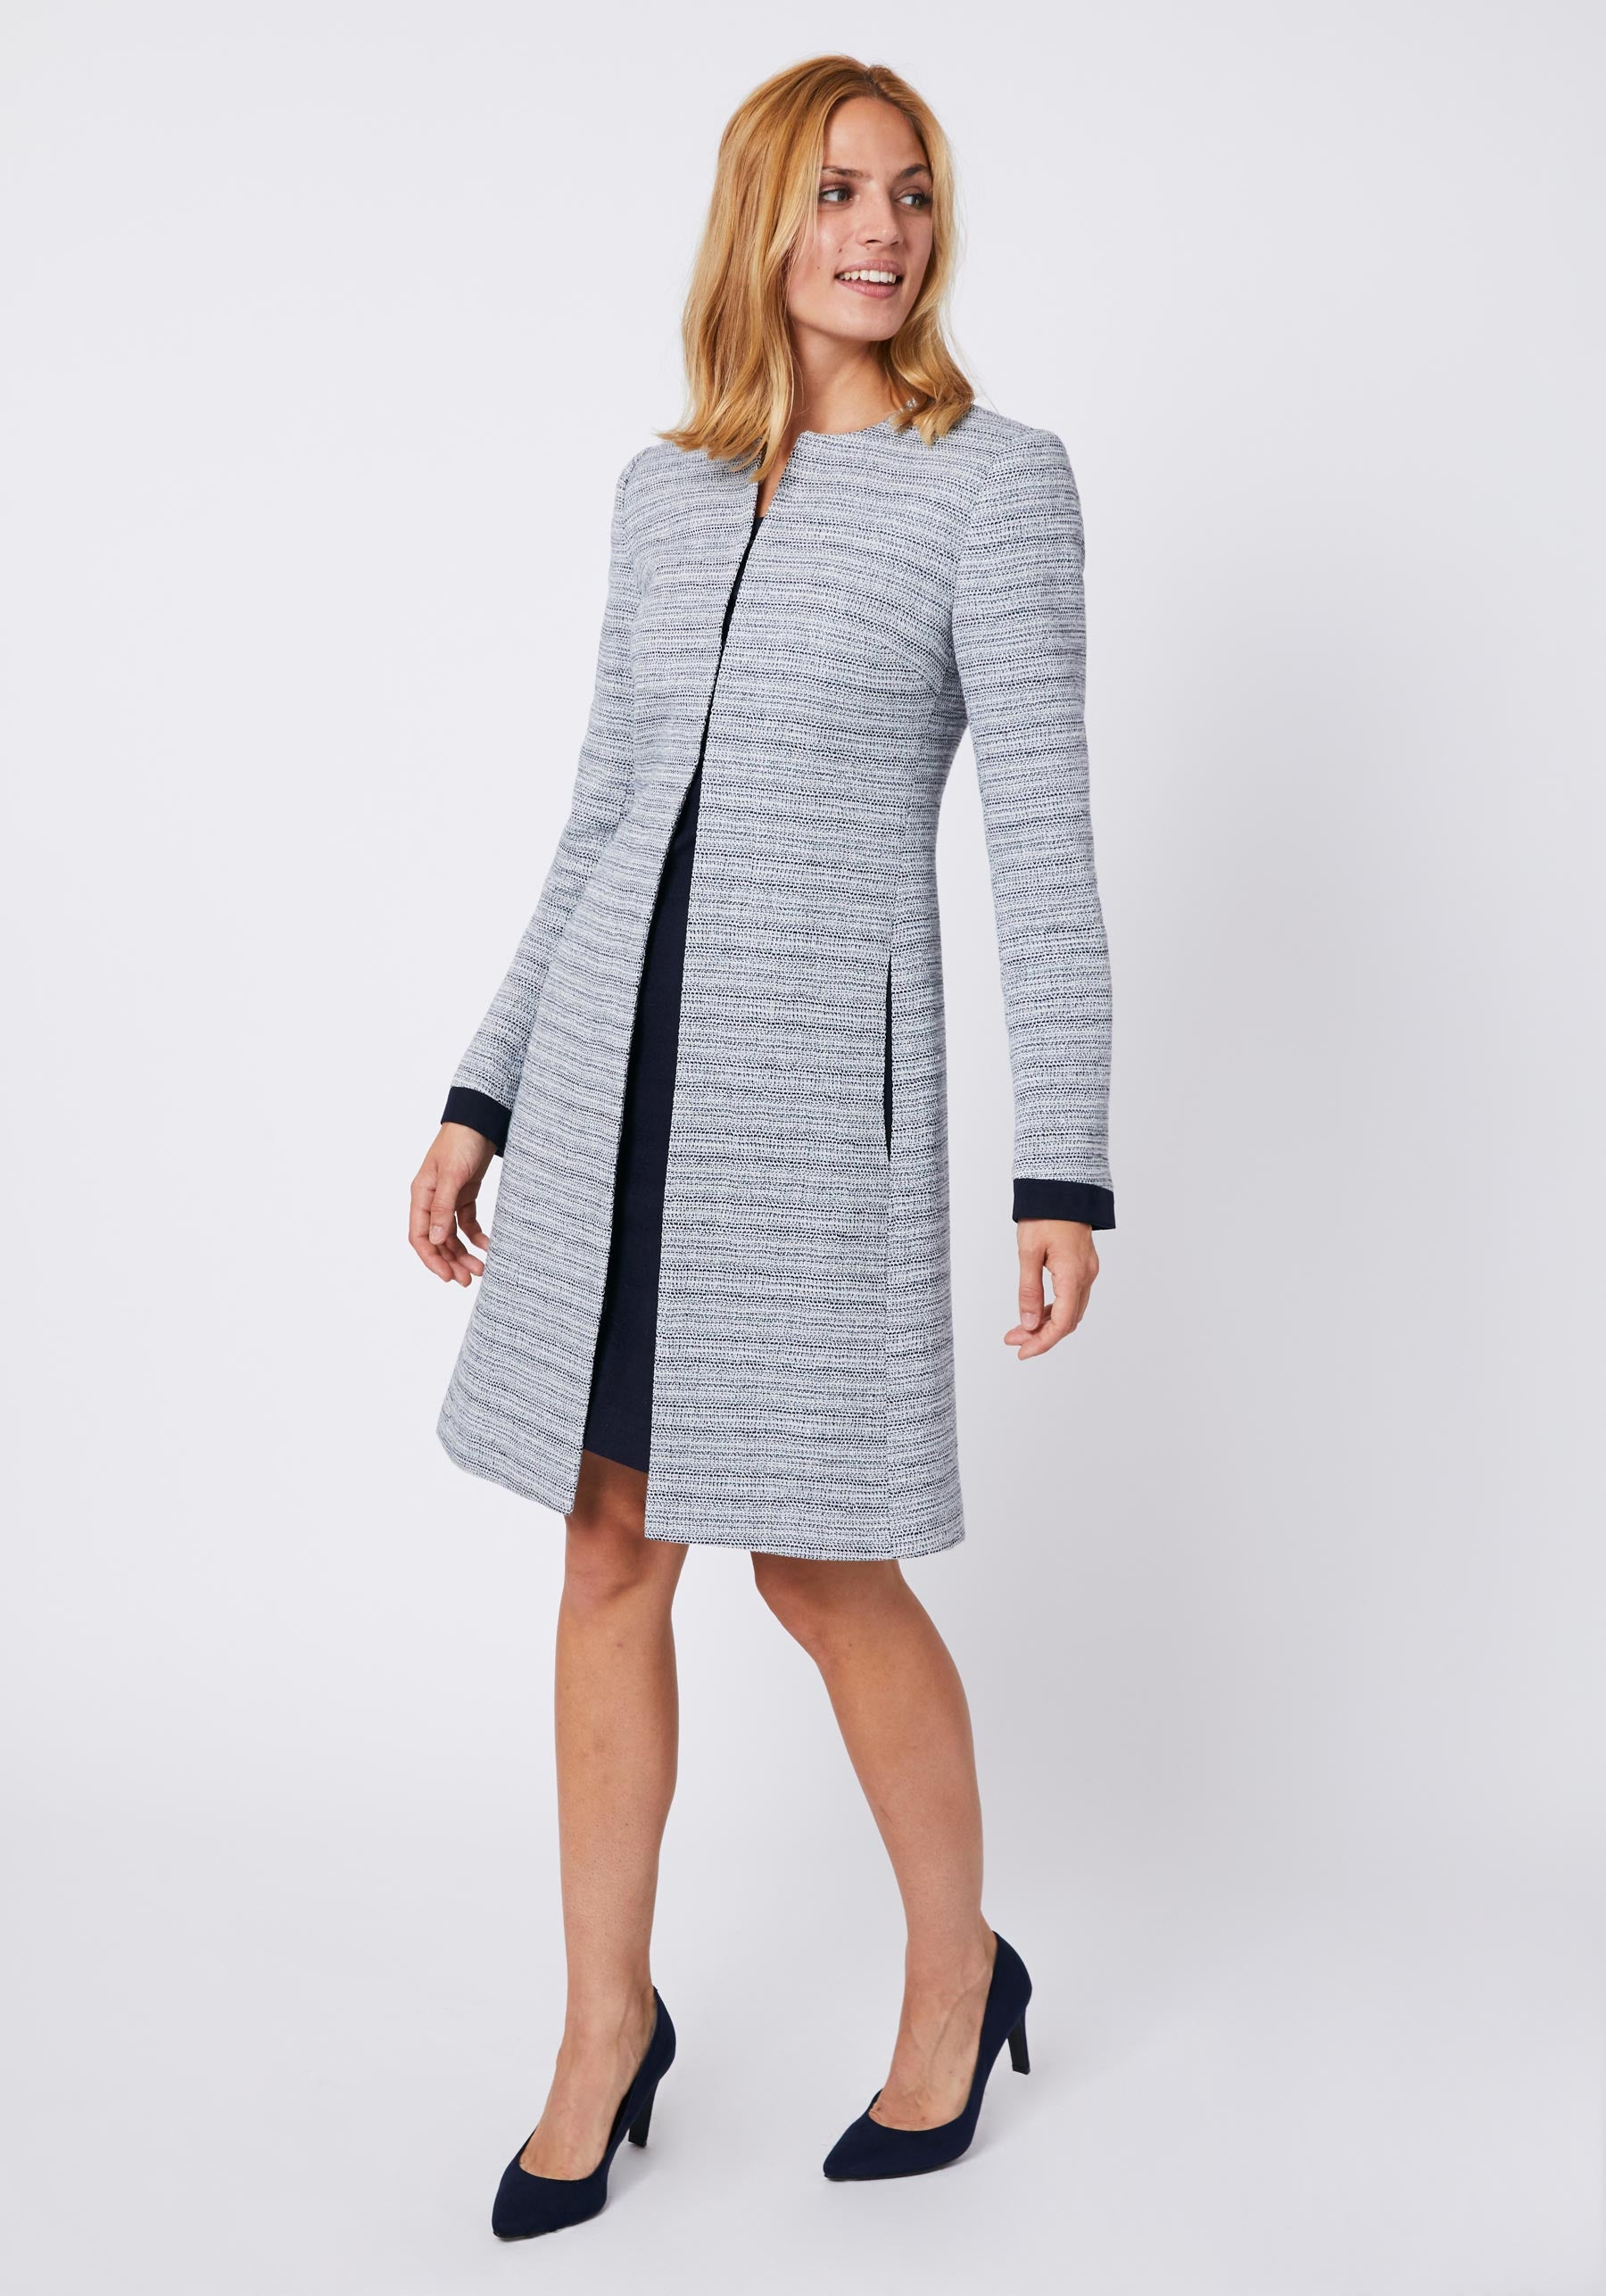 Tallulah Coat in Navy Linen Blend